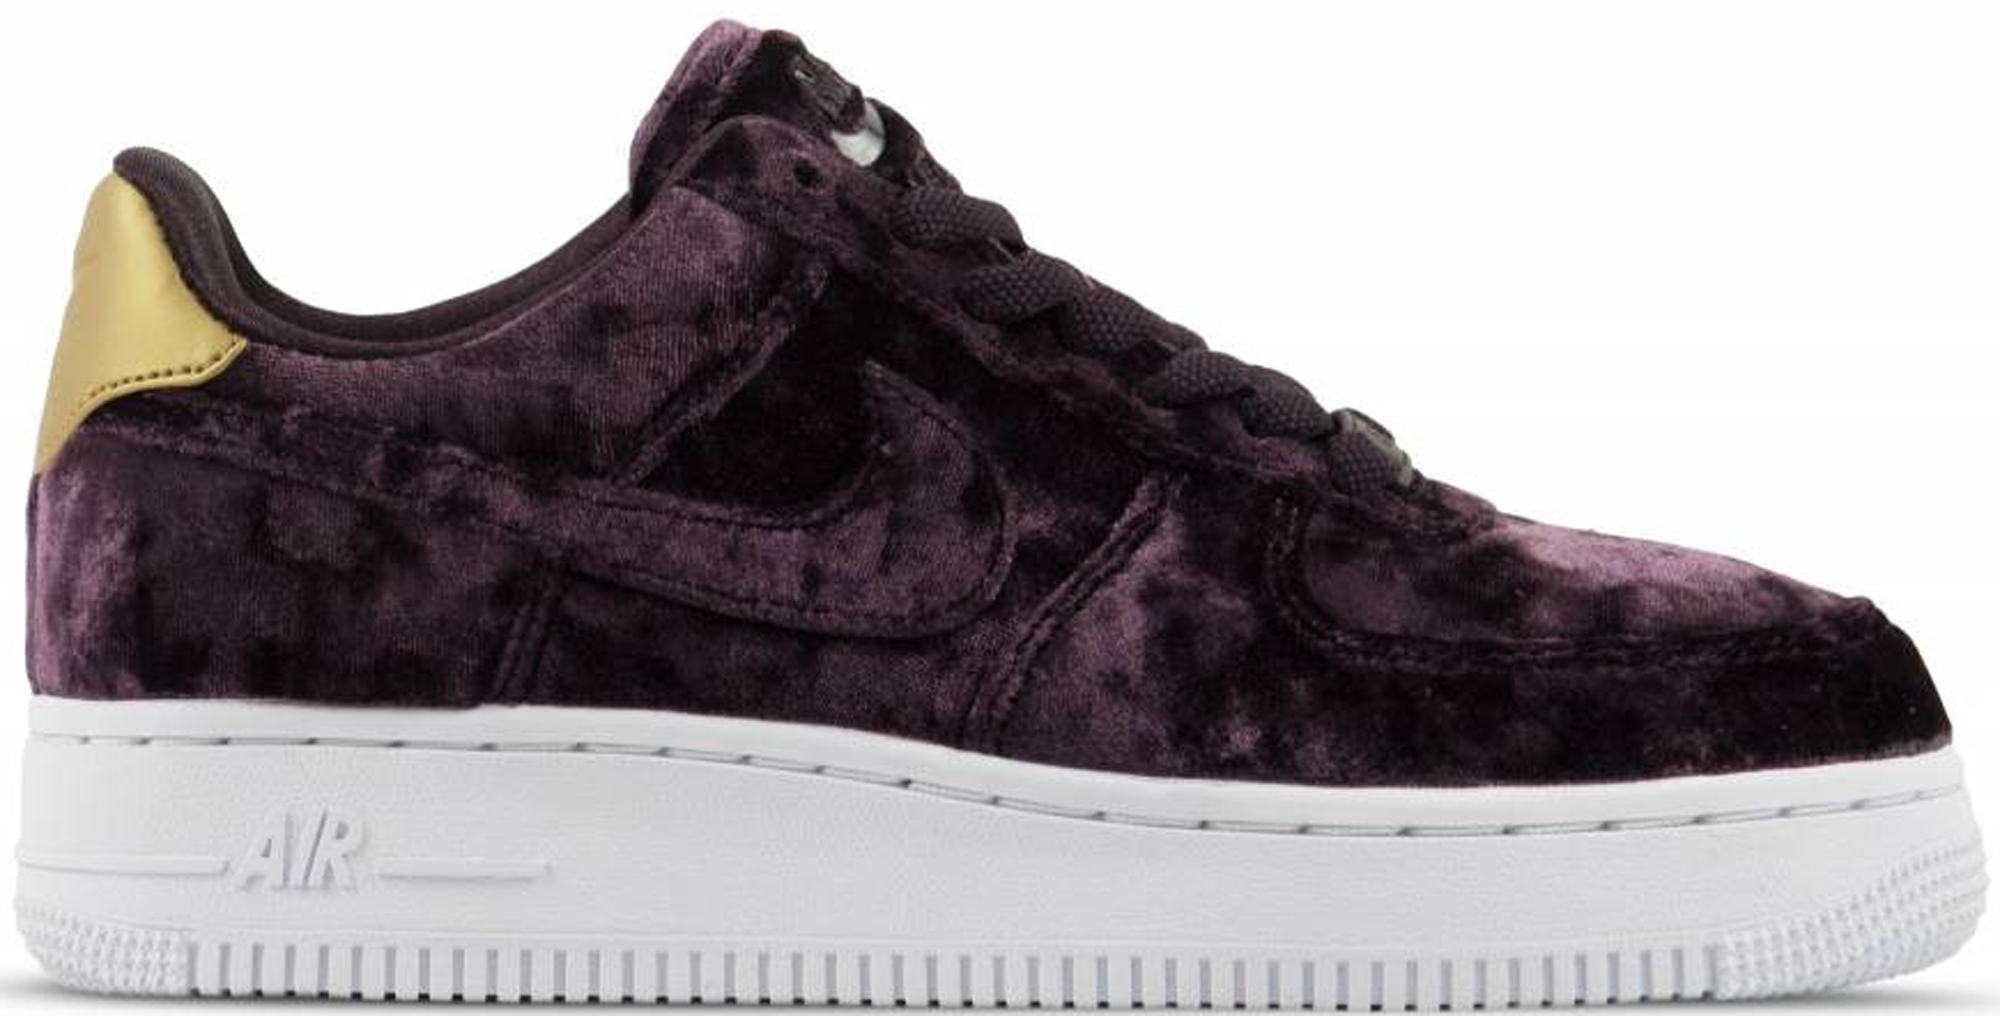 Women's Nike Air Force 1 Low Premium Port Wine Velvet